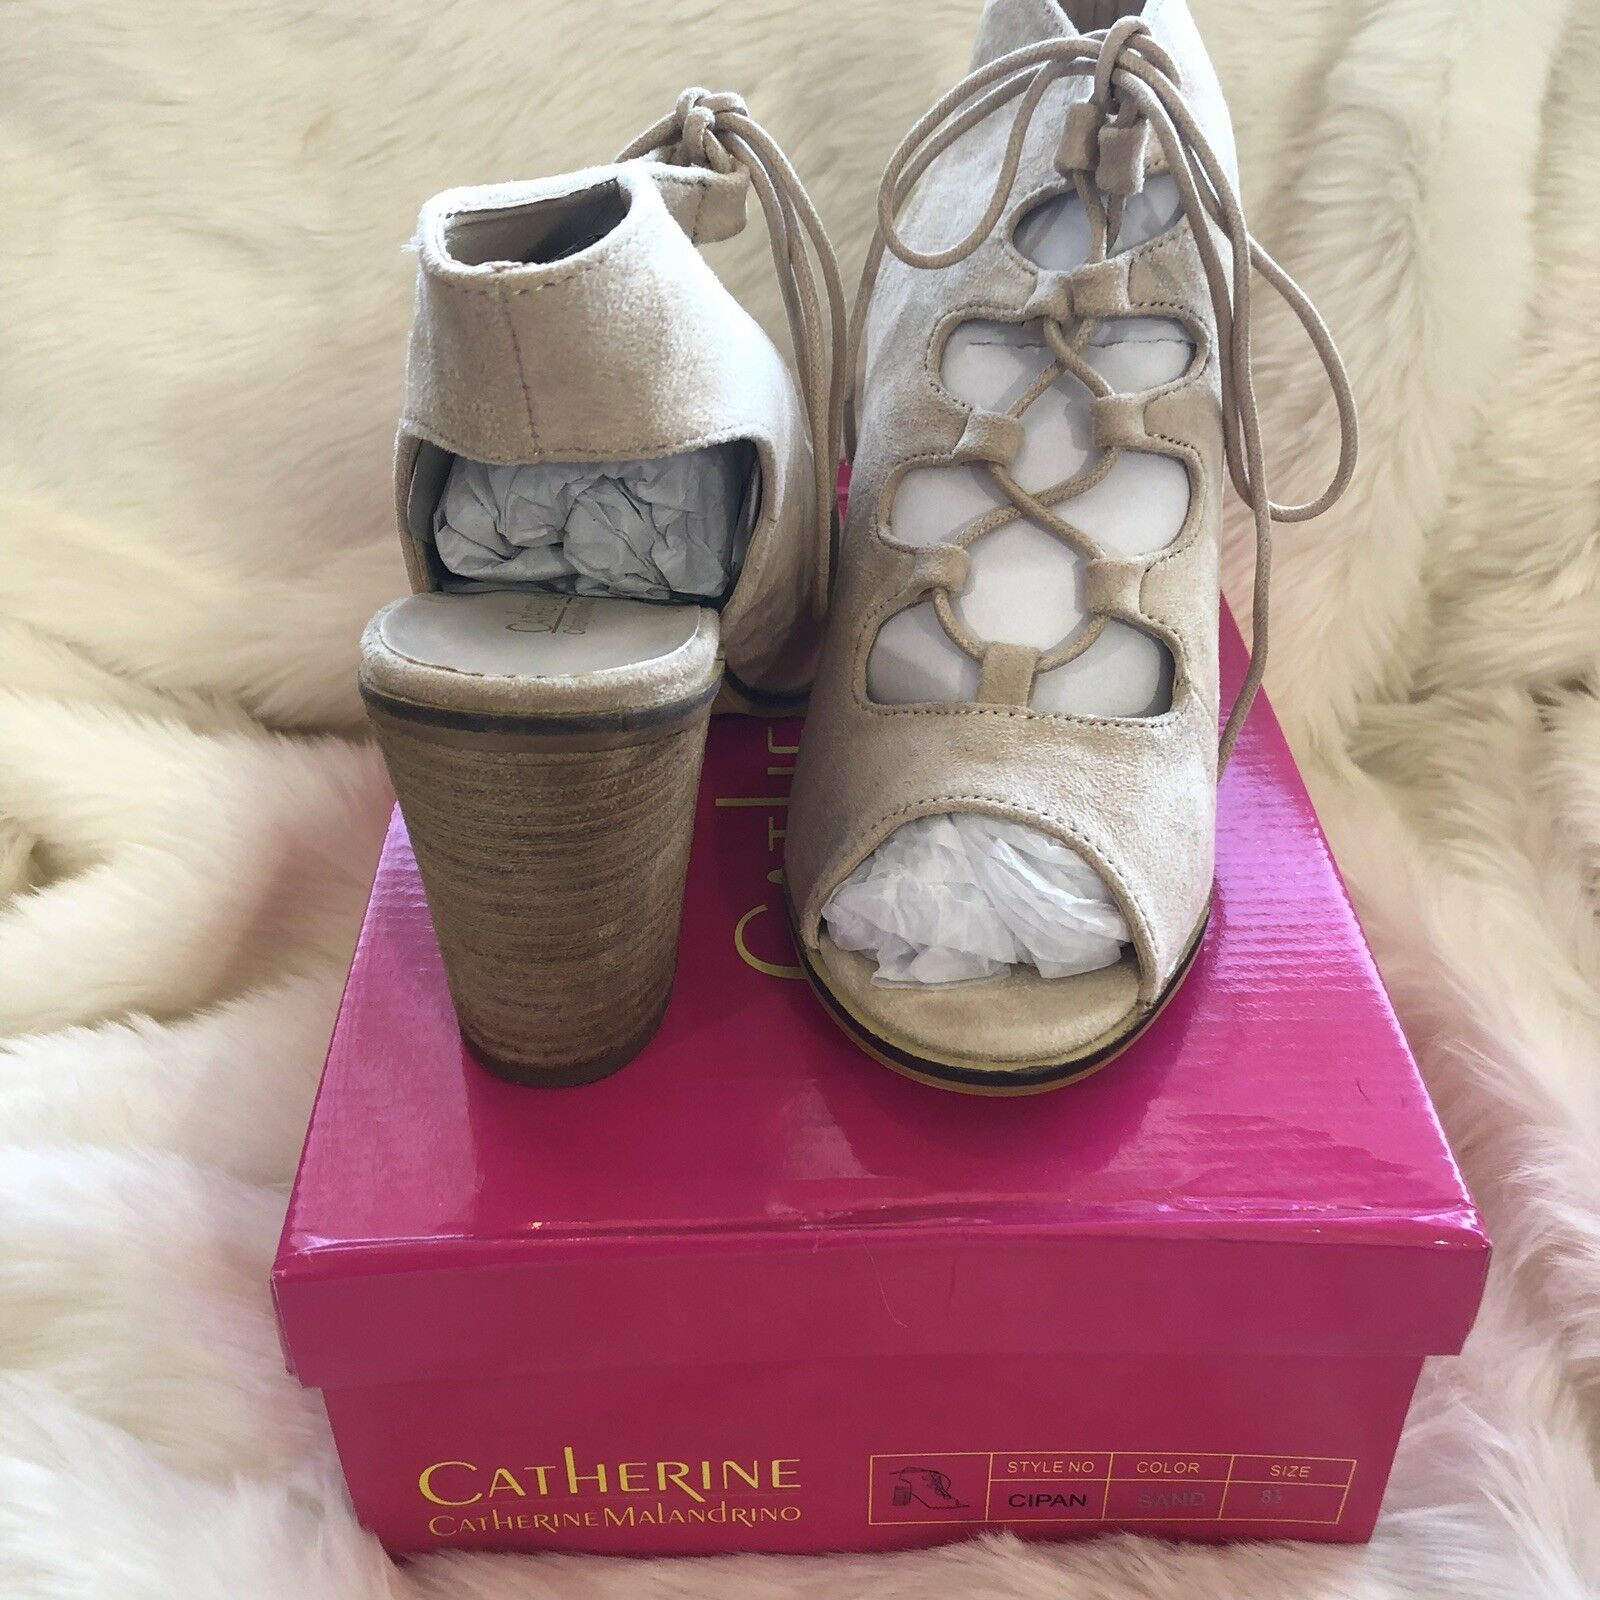 Catherine Catherine Malandrino  Cipan Sand suede block heel sandals. 8.5 shoes